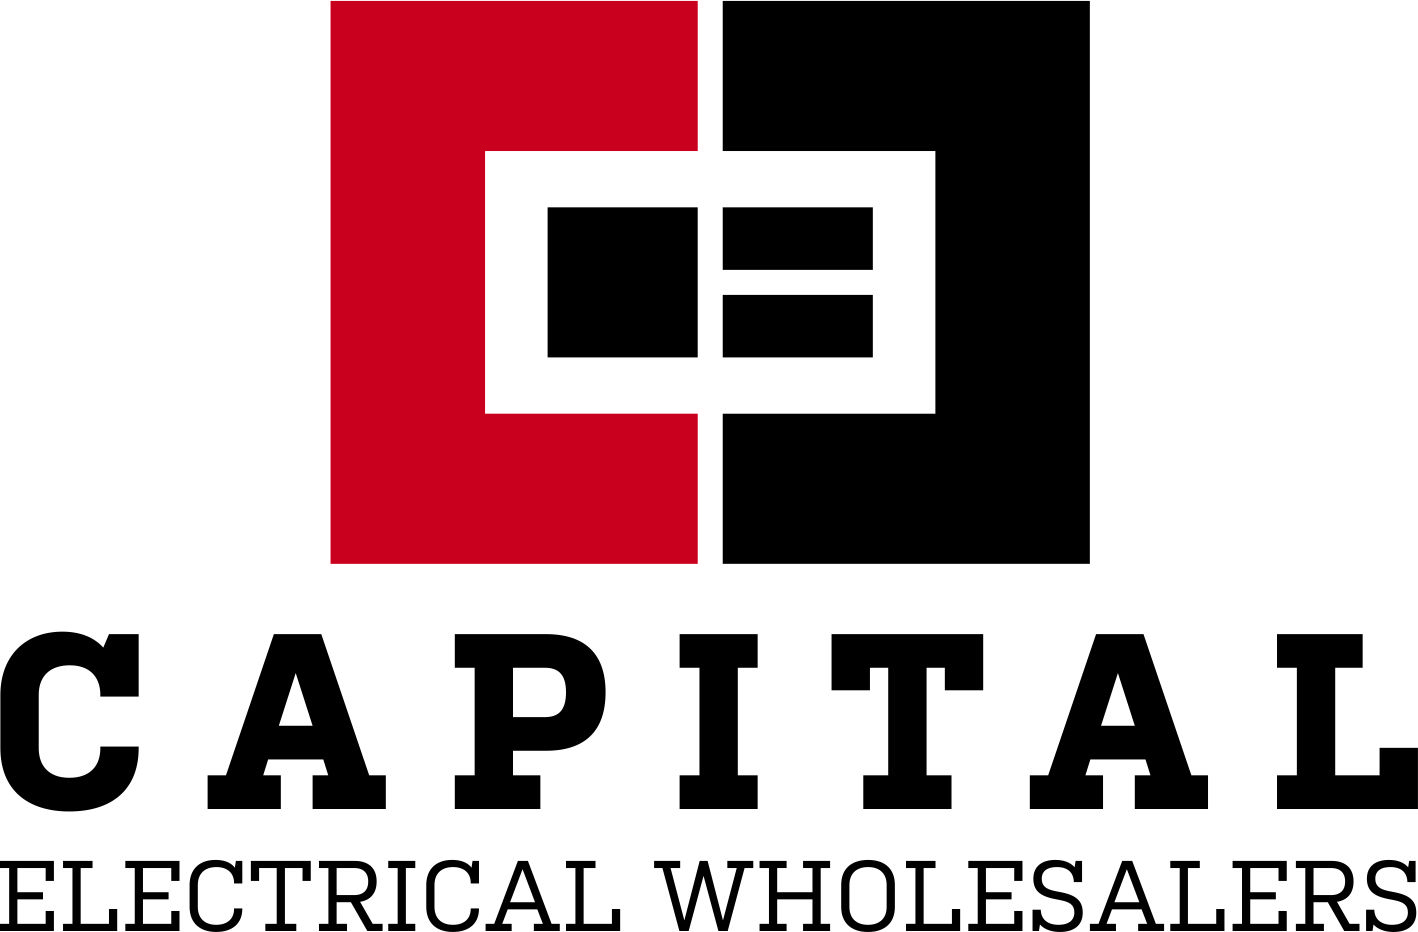 Capital Electrical Wholesalers Ltd